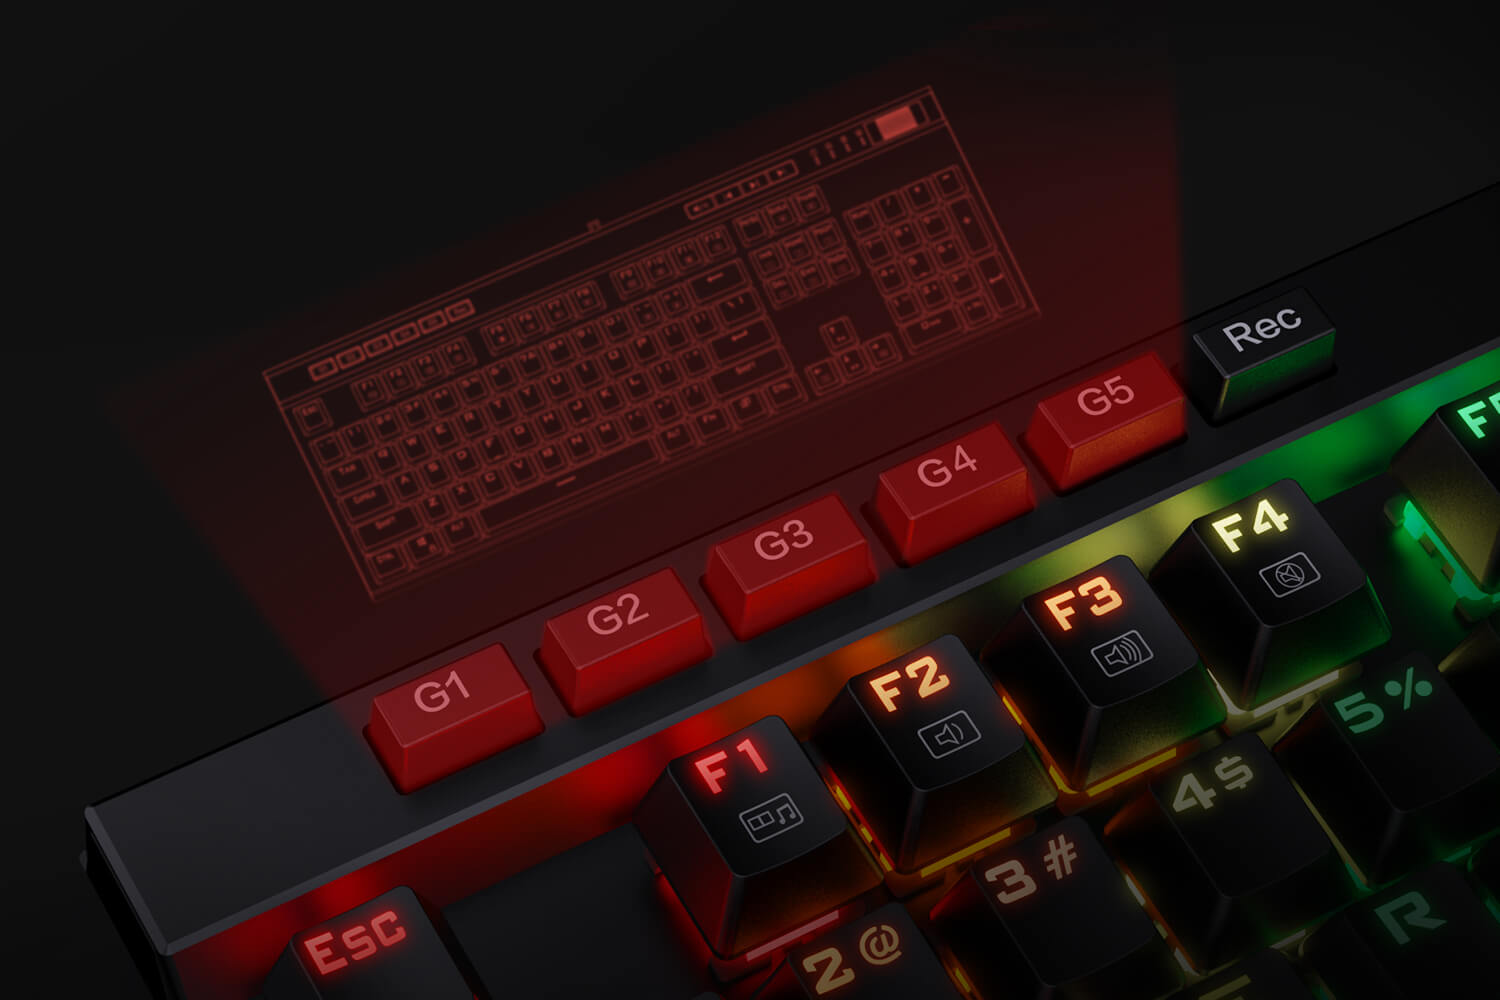 K580pro brown redragon keyboard with Onboard Macro Keys